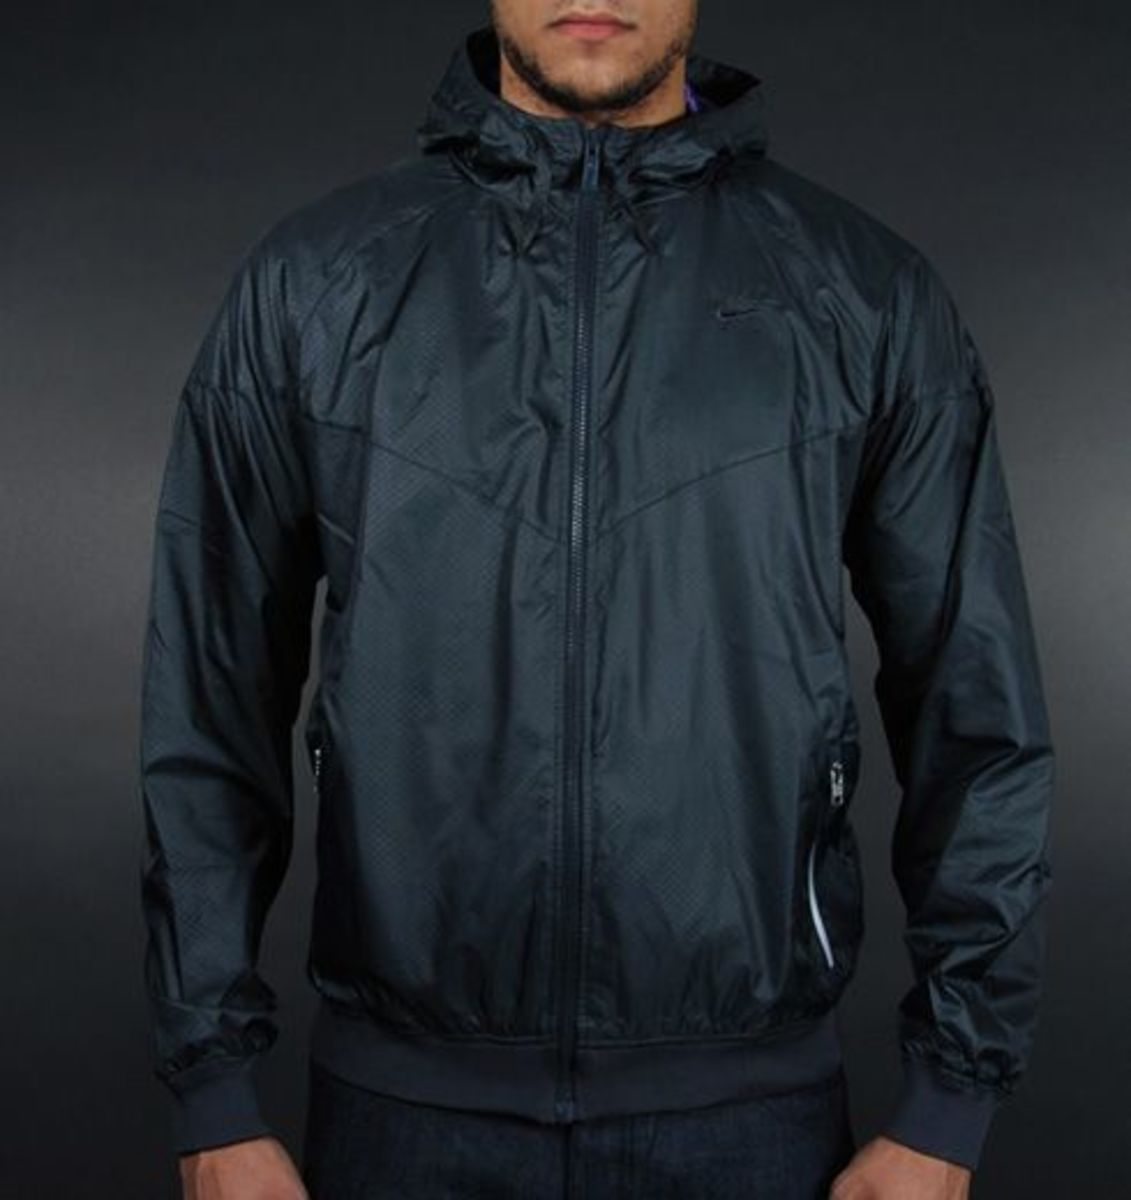 09ecccbee0 Nike Windrunner Jacket - Warrior Pack - Freshness Mag